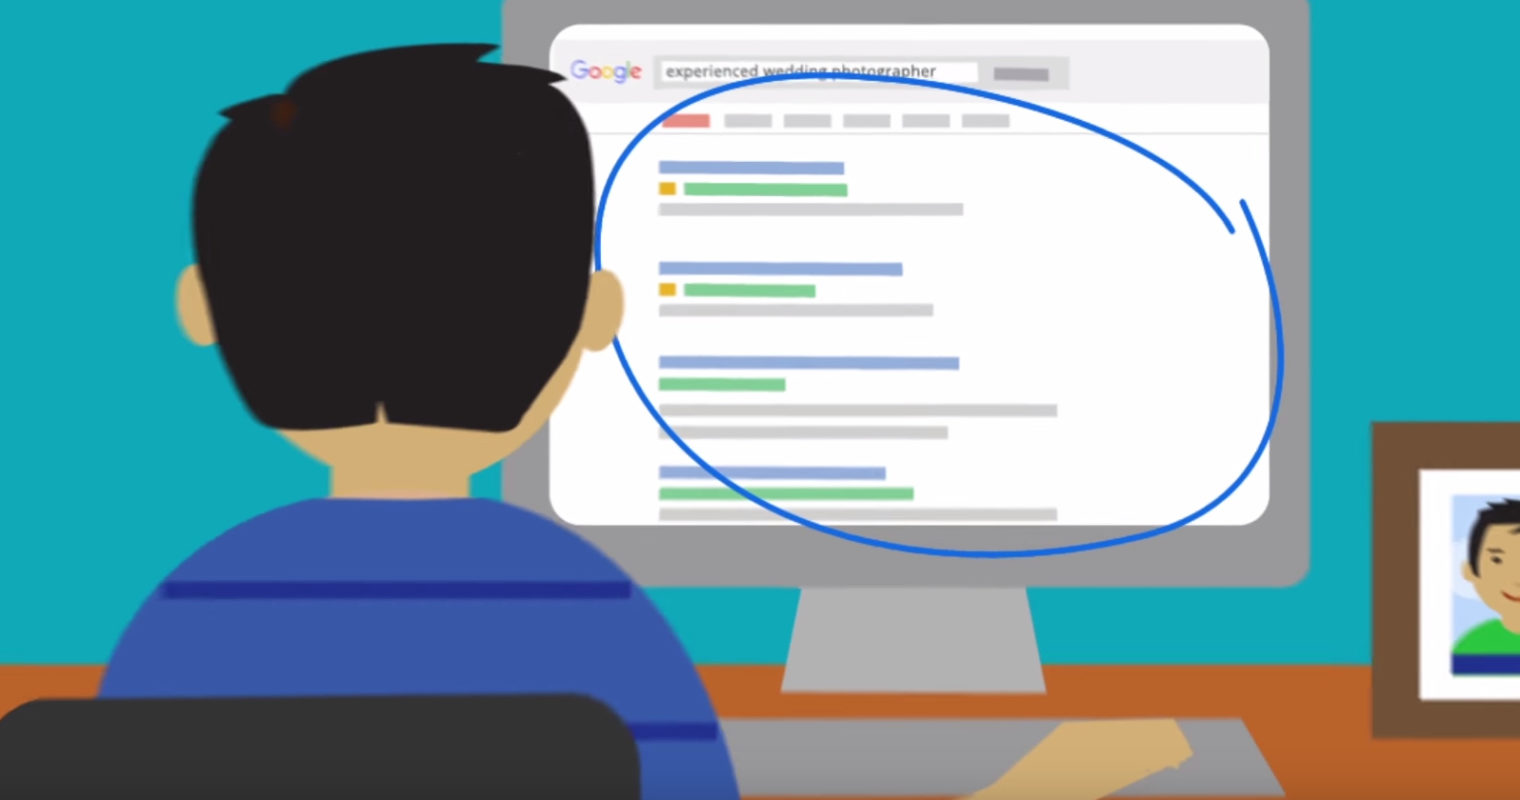 Google's Ads Added by AdWords Test: 7 Things to Know